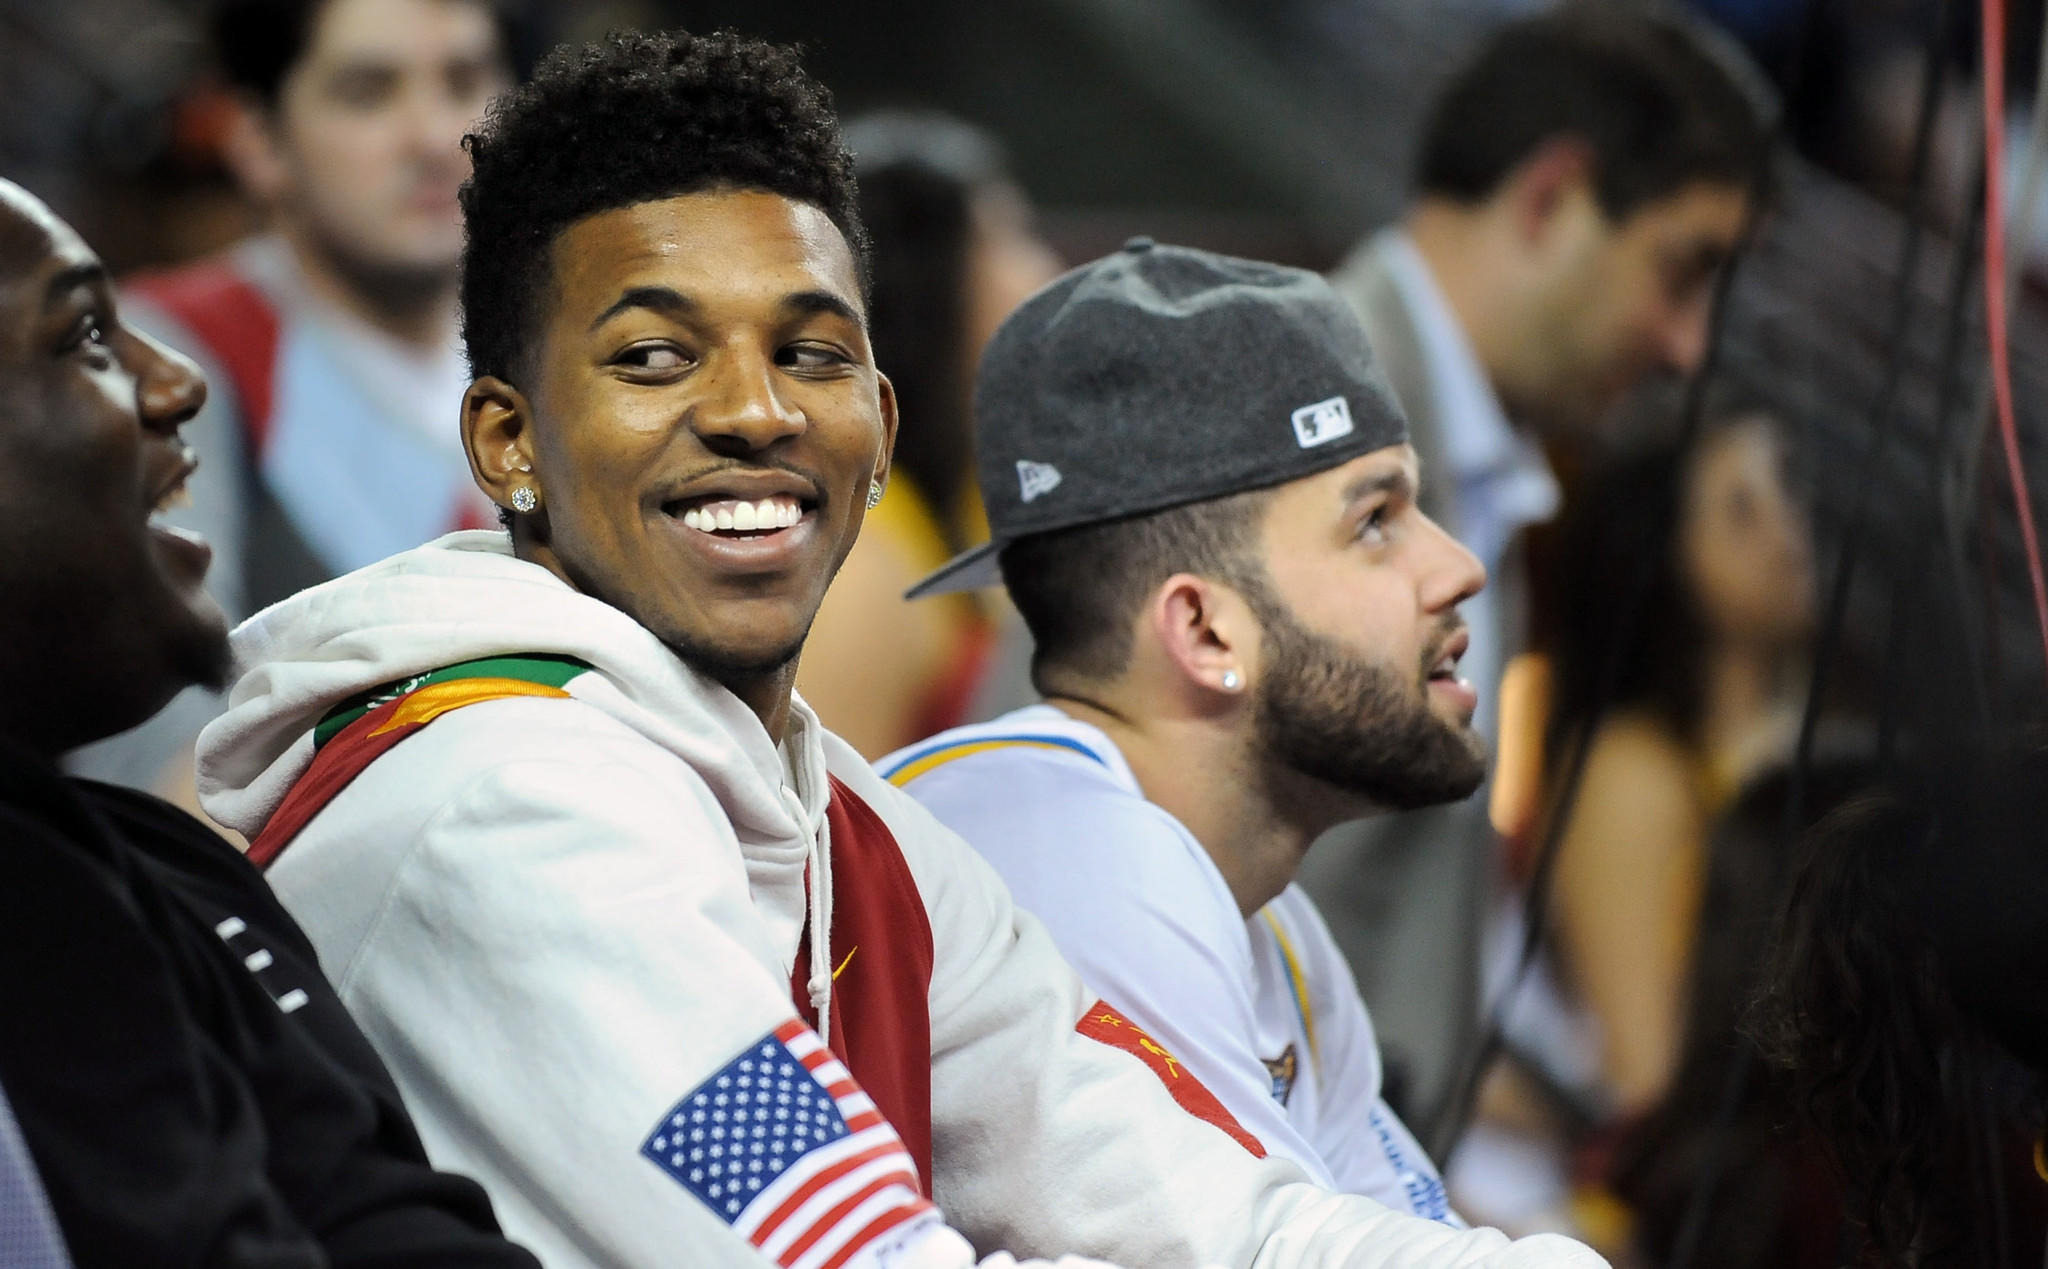 Lakers teammates Nick Young, left, and Jordan Farmar attend a USC-UCLA men's basketball game in February. They made more sporting rounds this week.